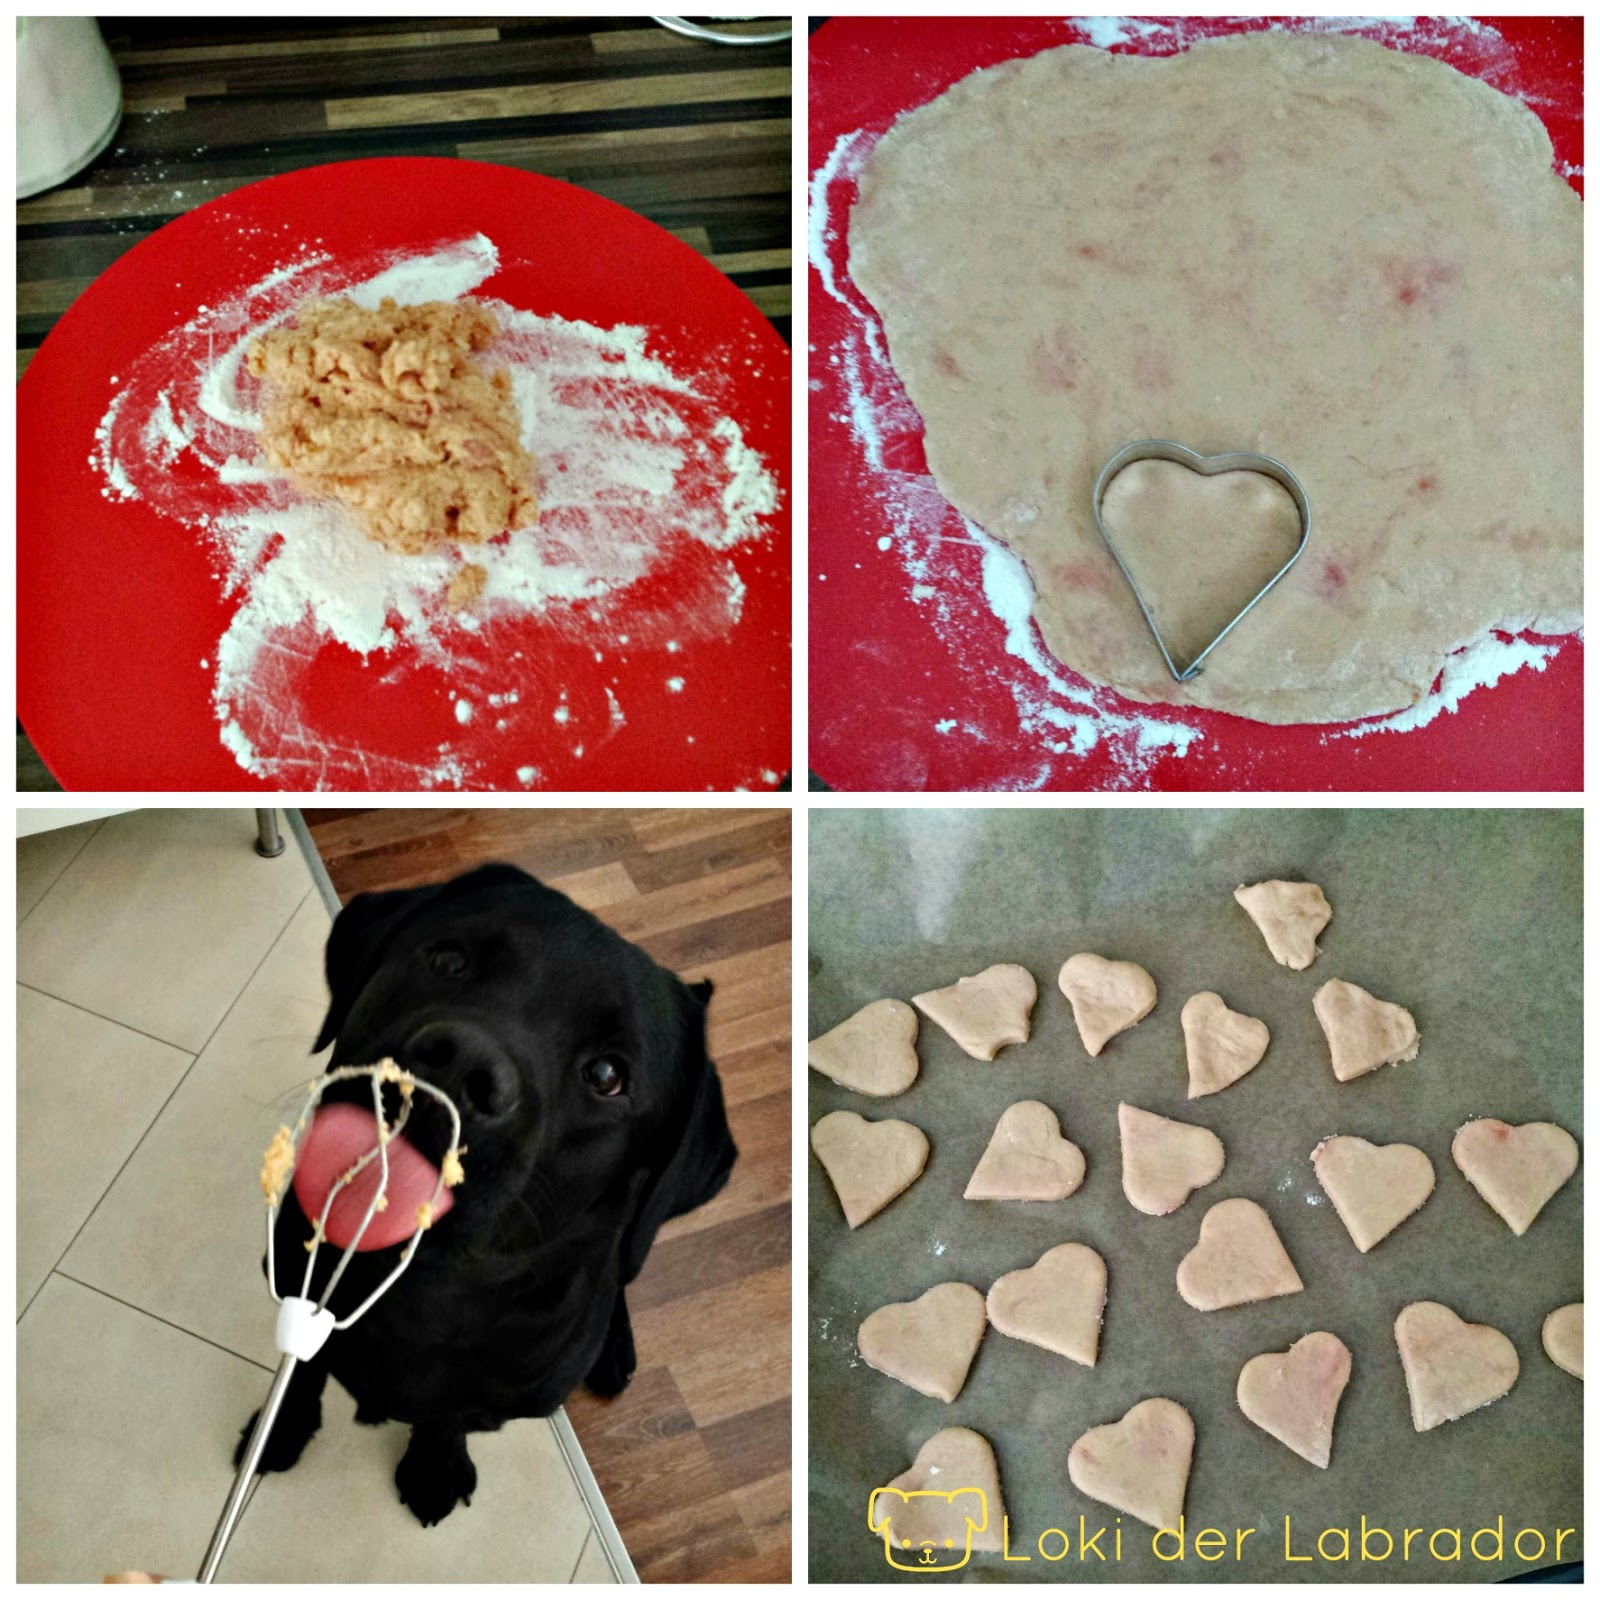 Hundekekse backen